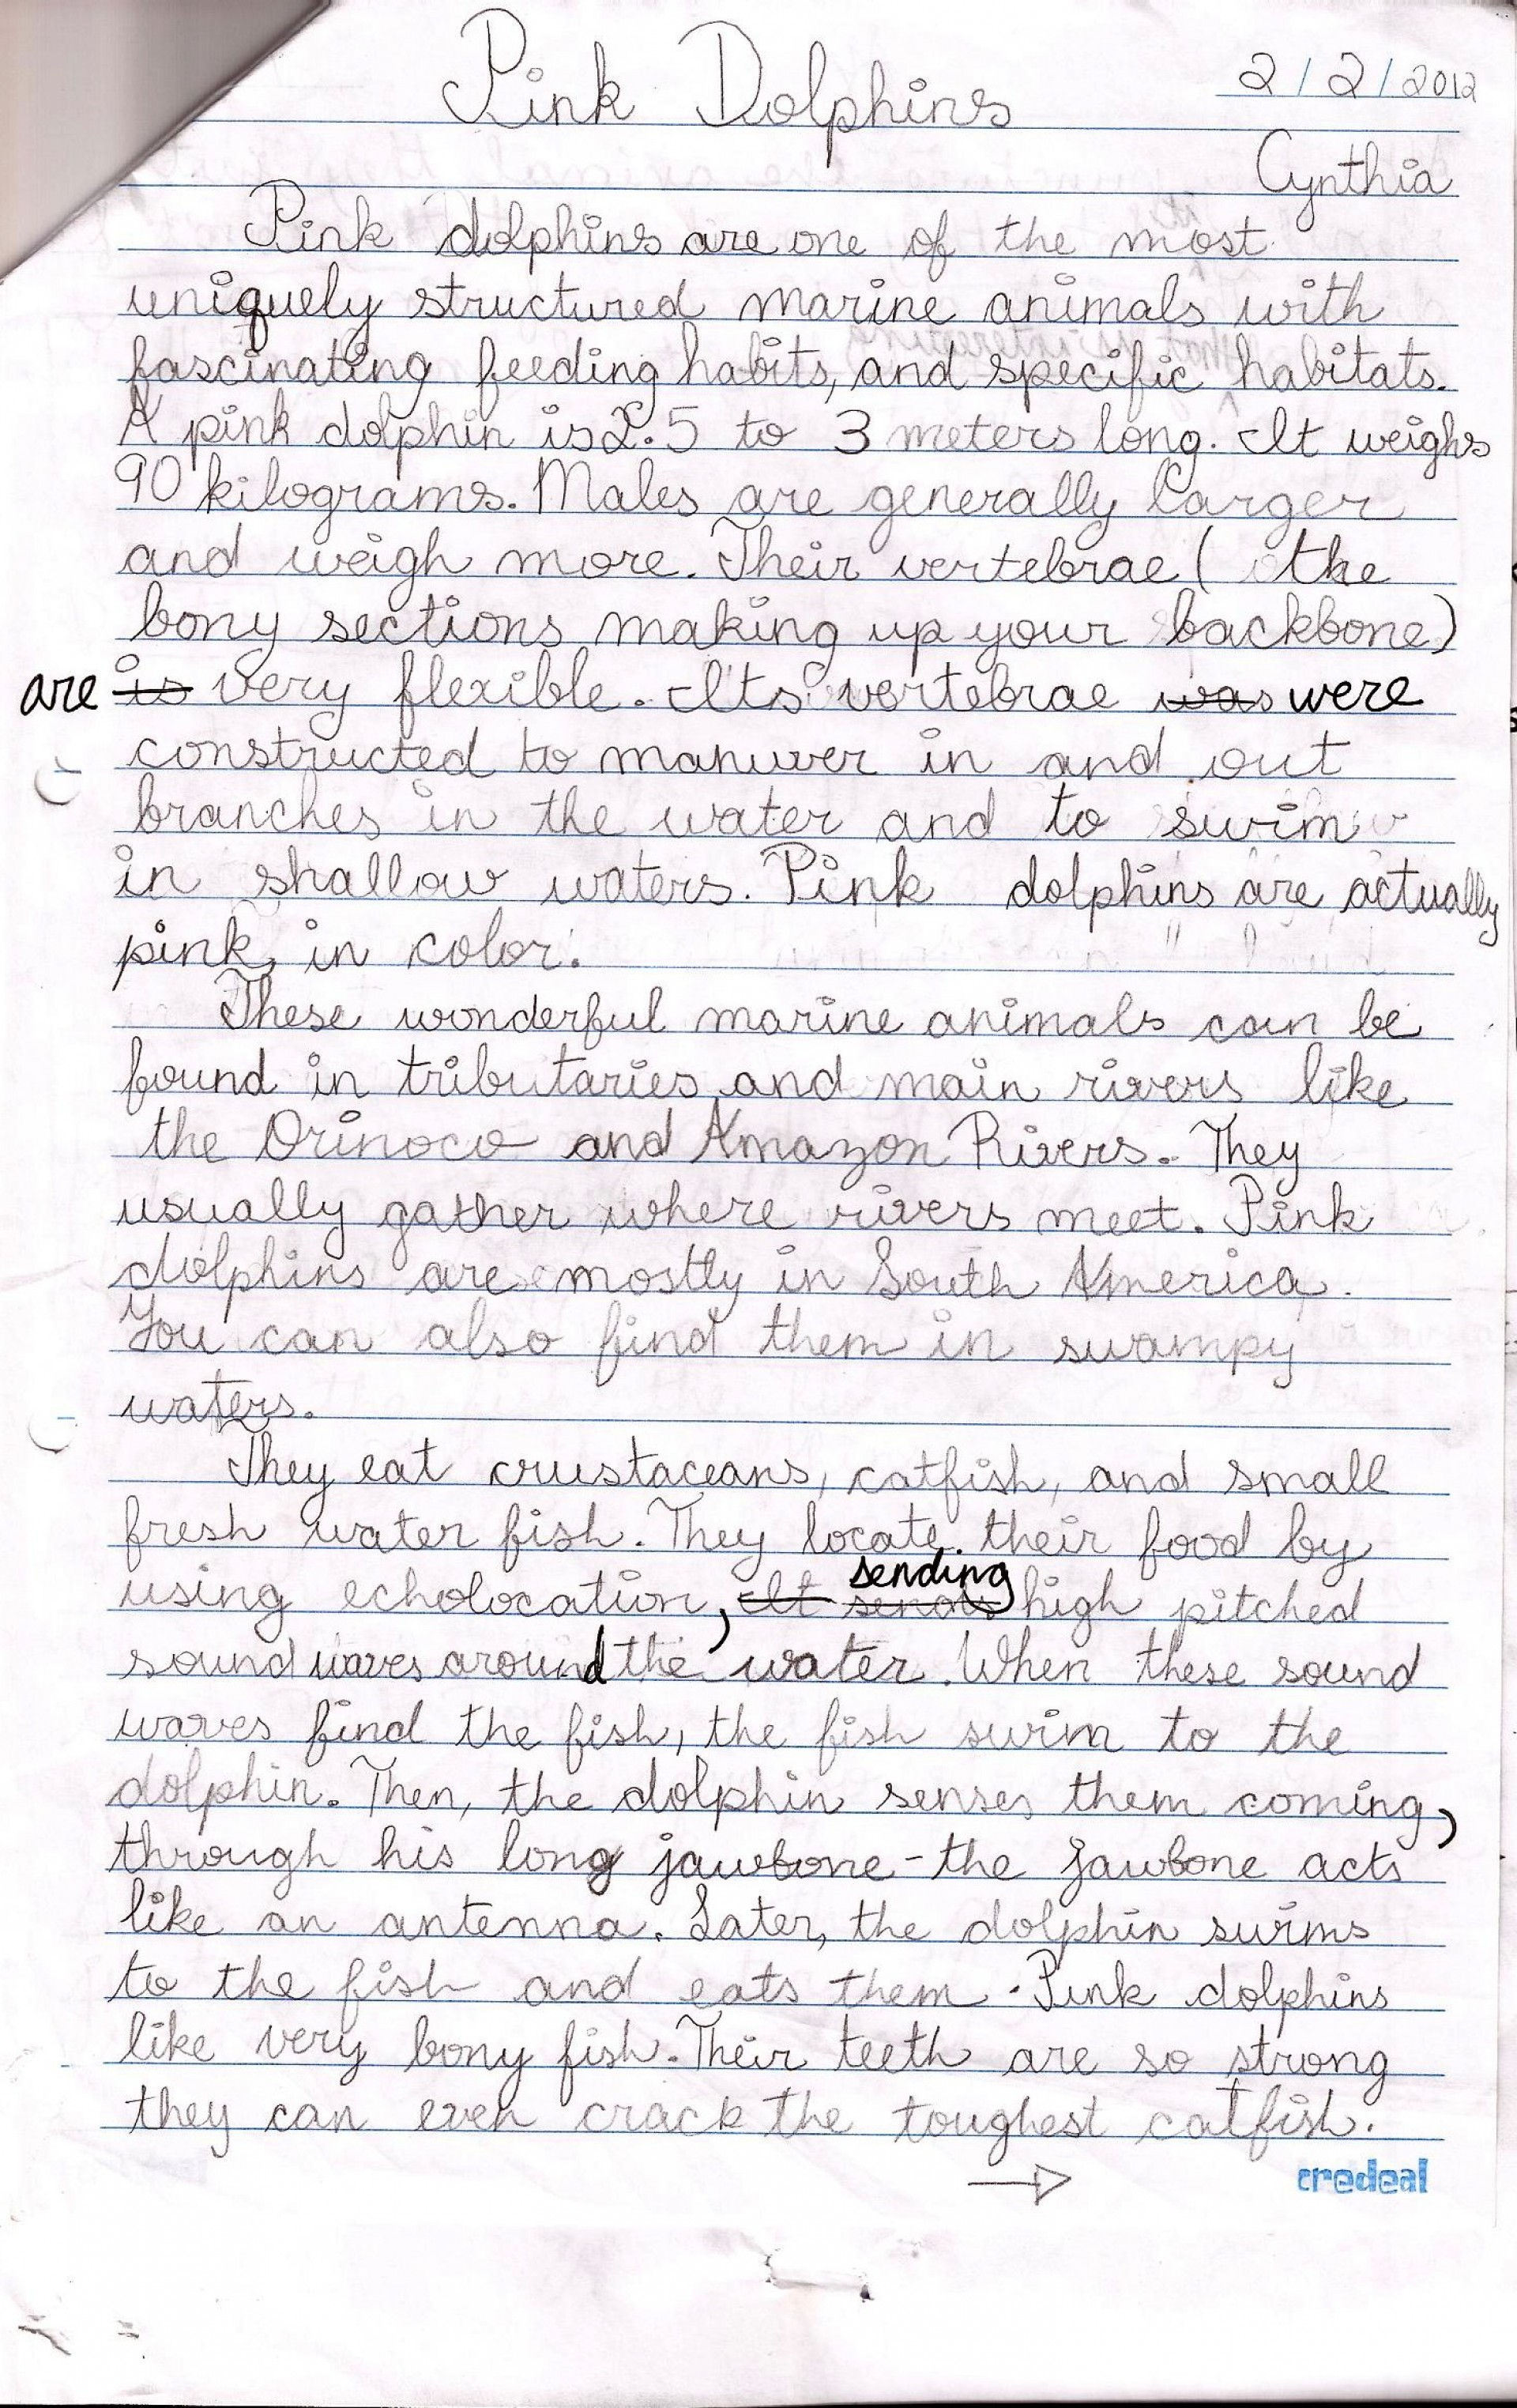 011 Essay Example Pink Dolphins Handwritten Draft Topics For Grade Marvelous 5 Writing Students Persuasive 5th English Question Paper Cbse 1920